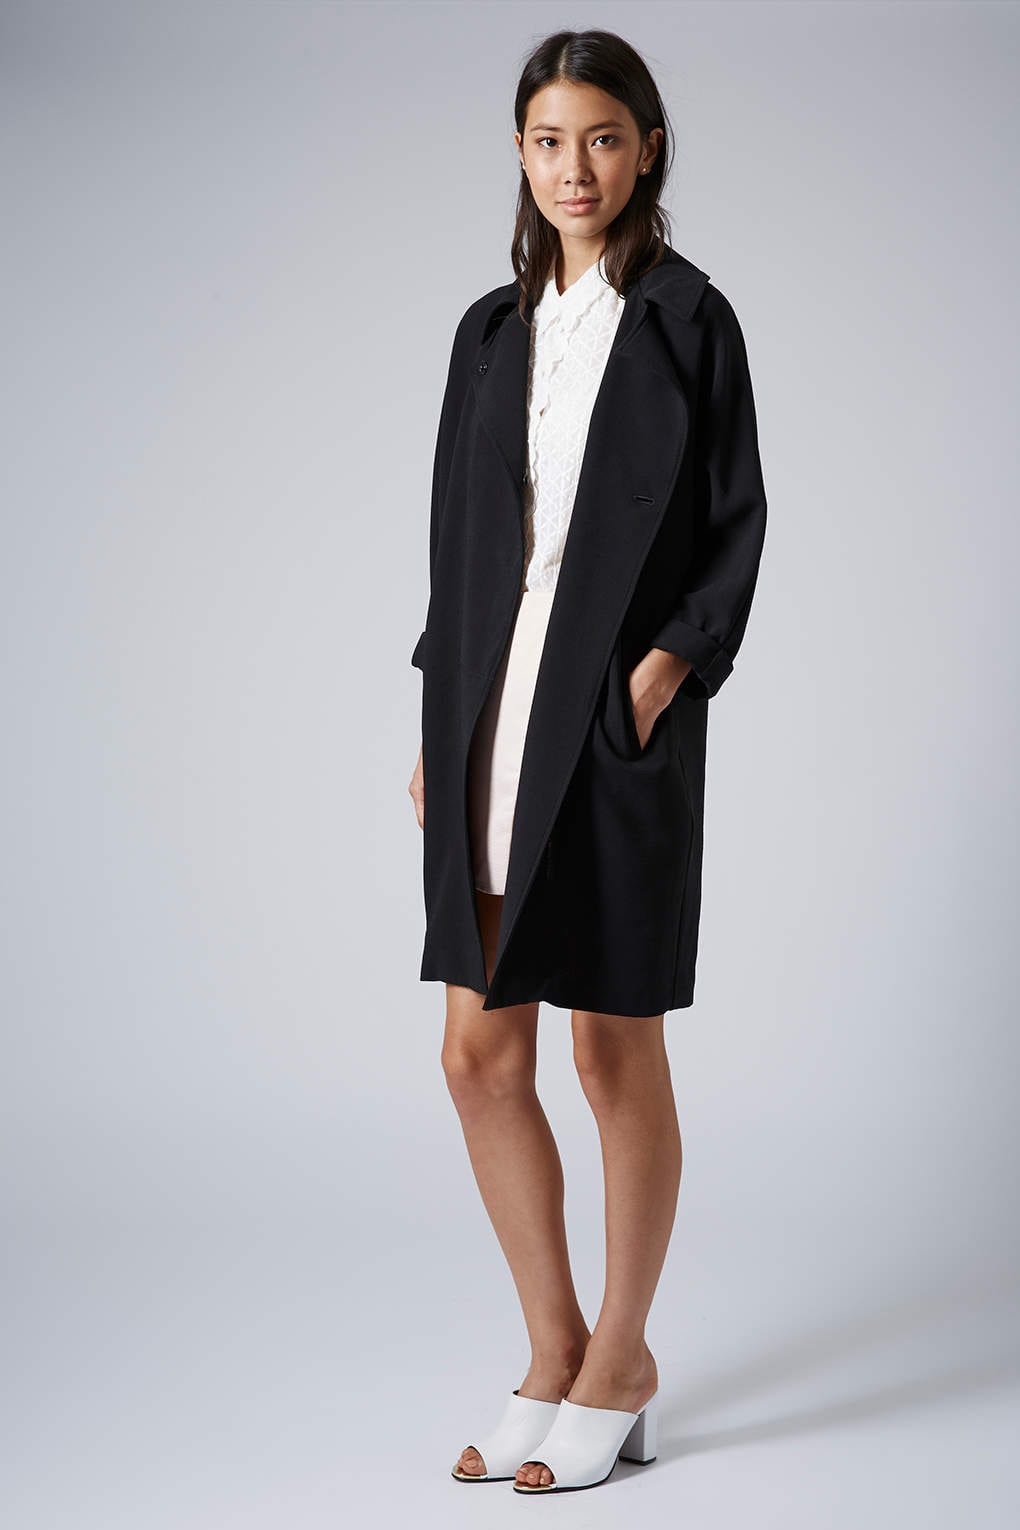 StyleANDMinimalism | L'Amour | Topshop | Black Crimped Duster Coat